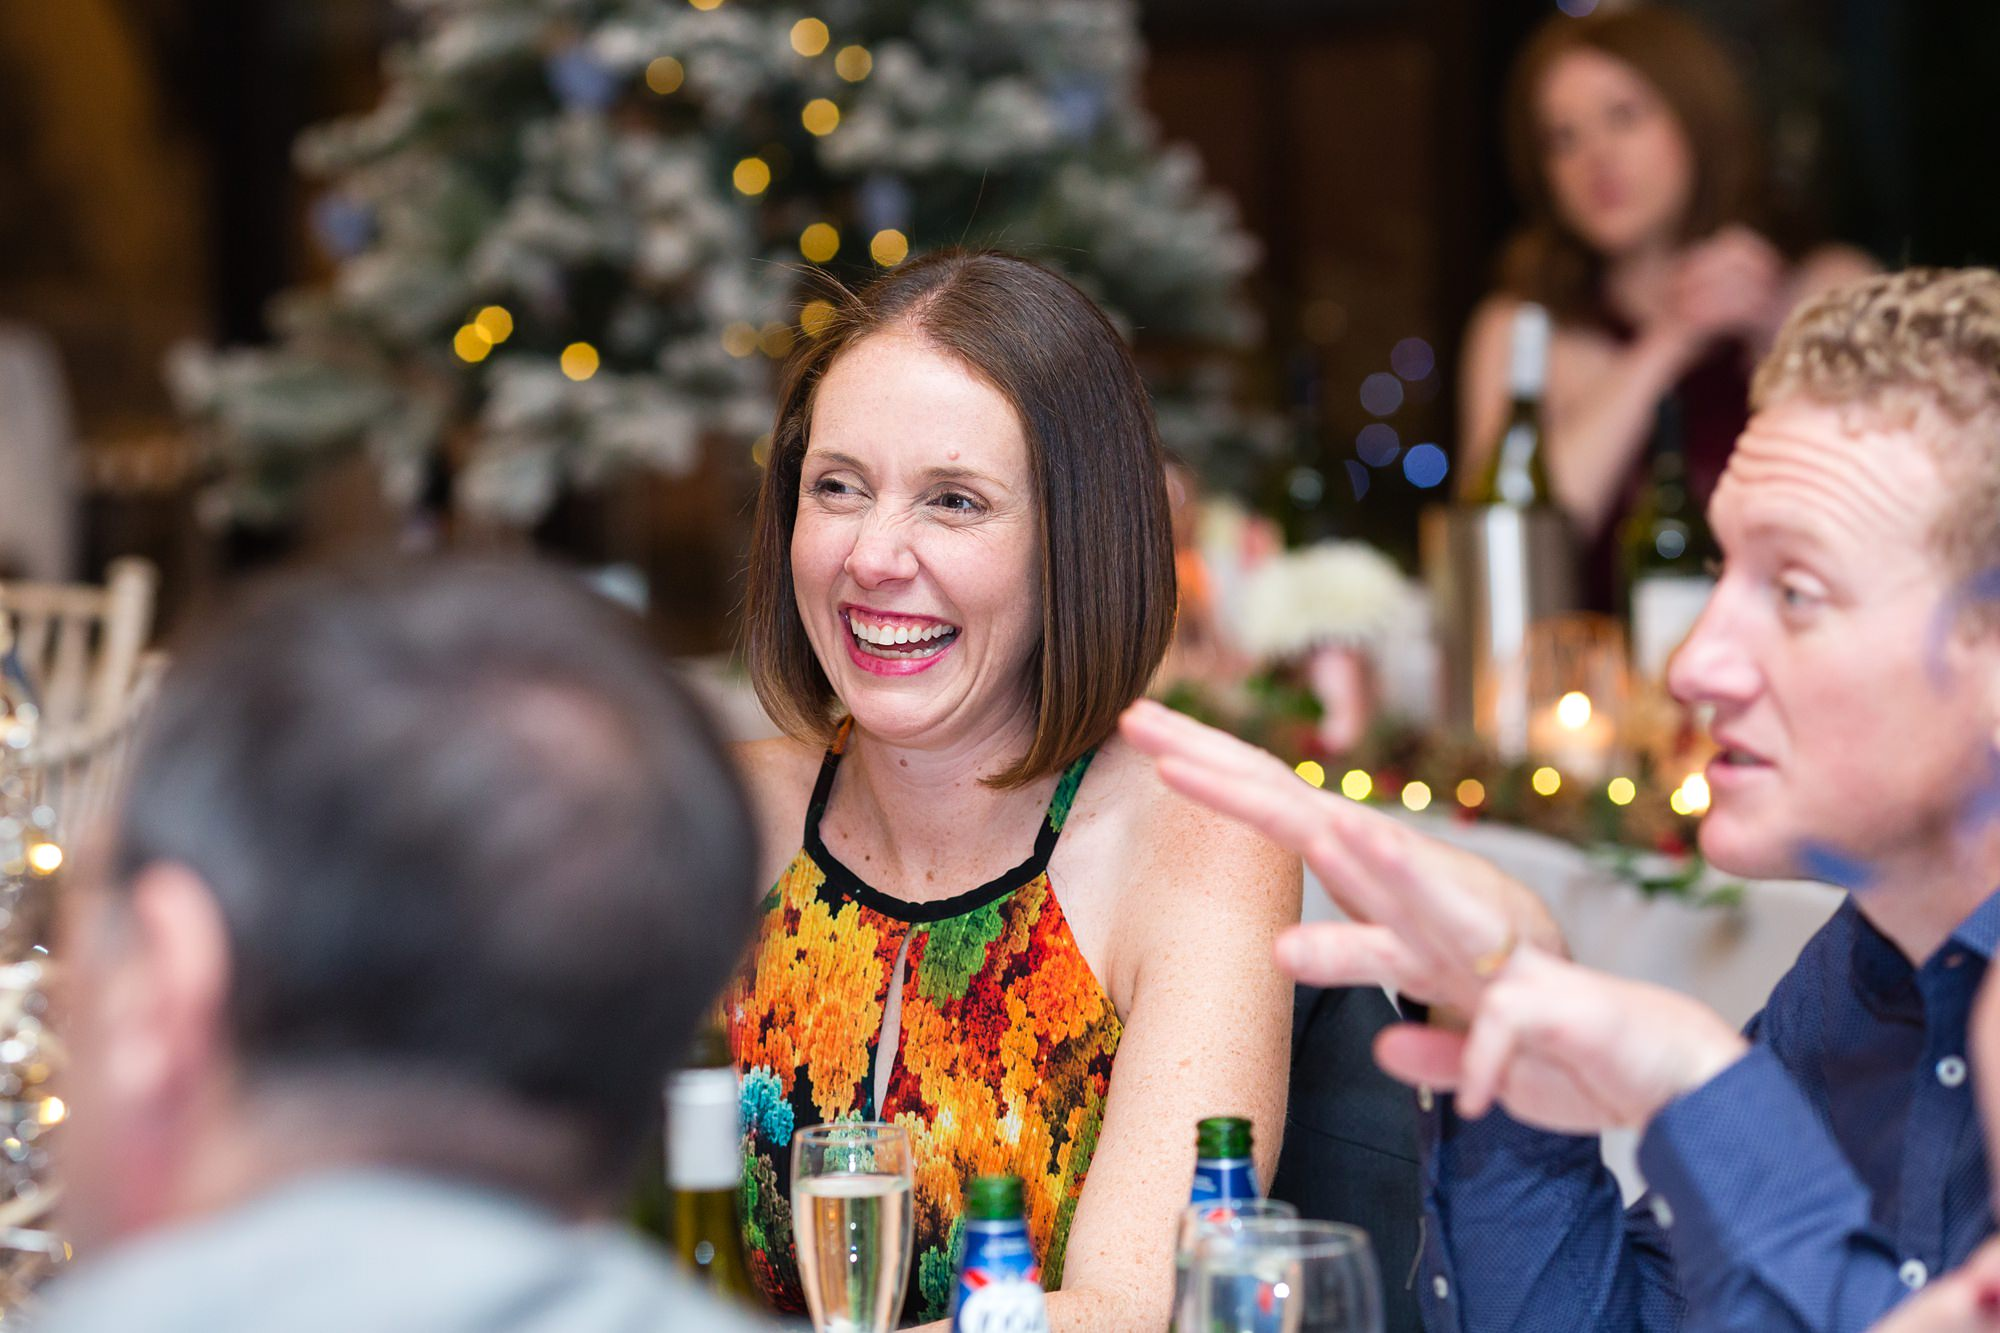 Guest Laughing during the speeches